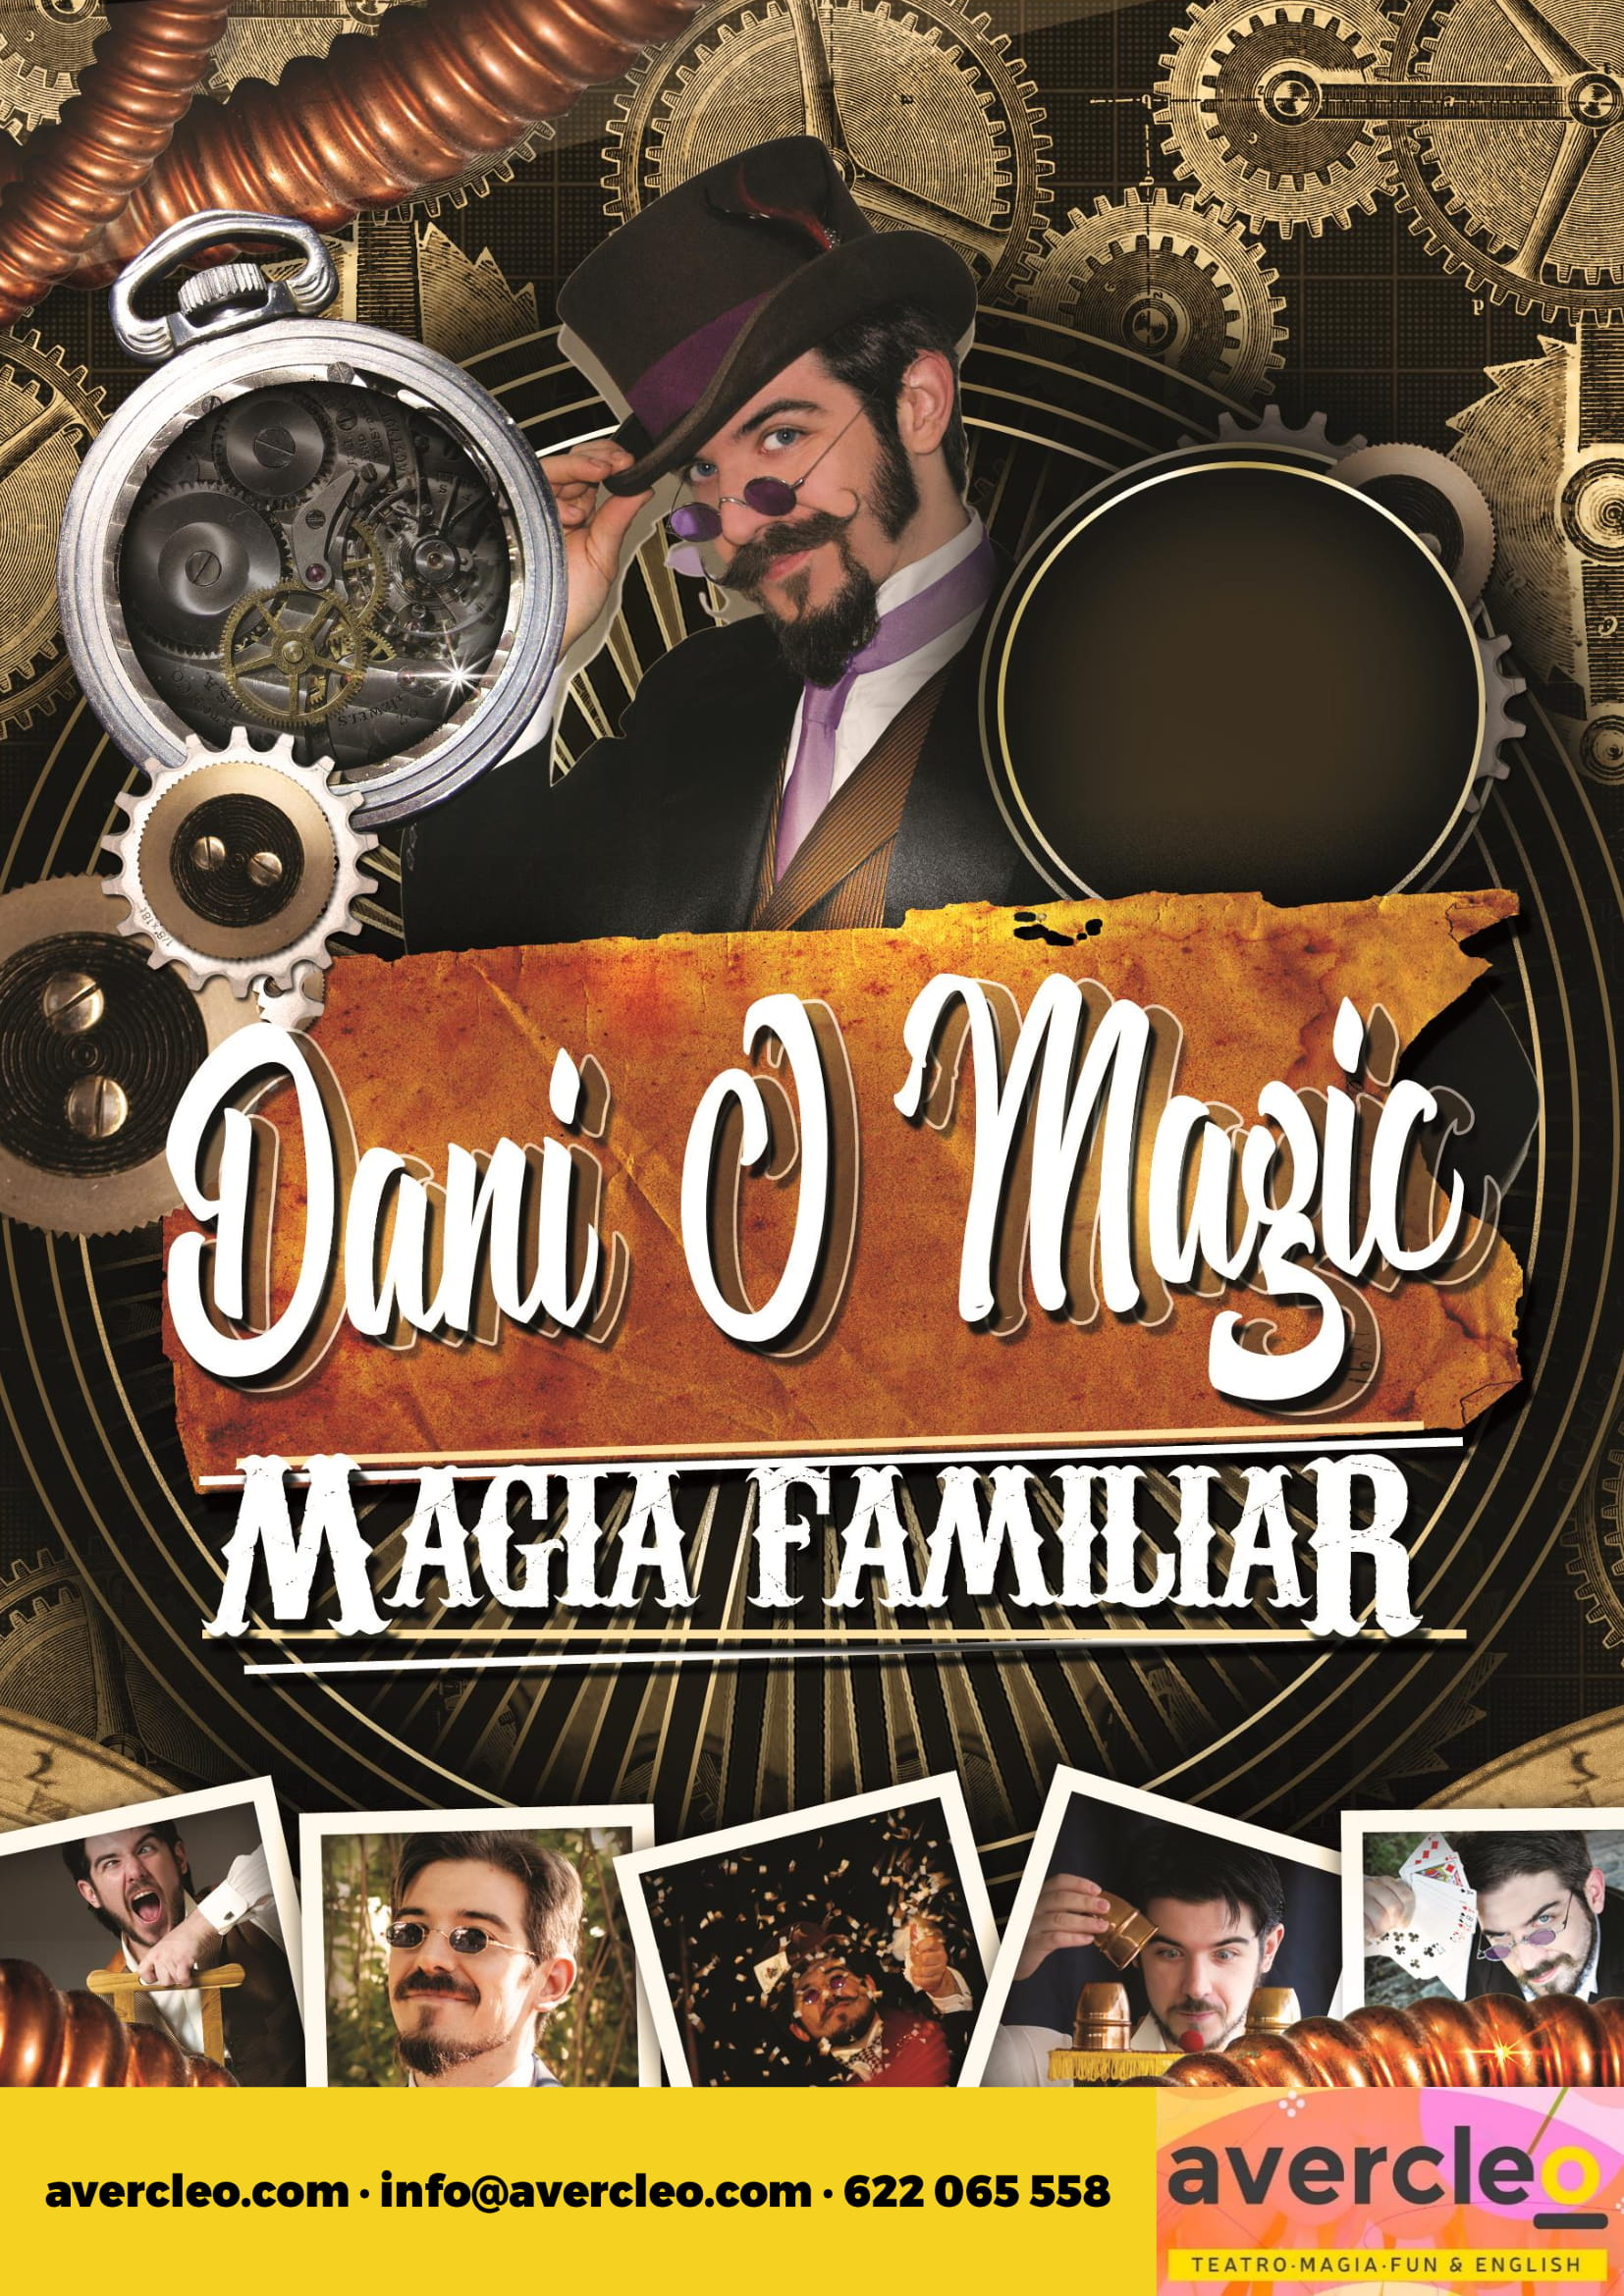 Cartel_Magia_Familiar-1